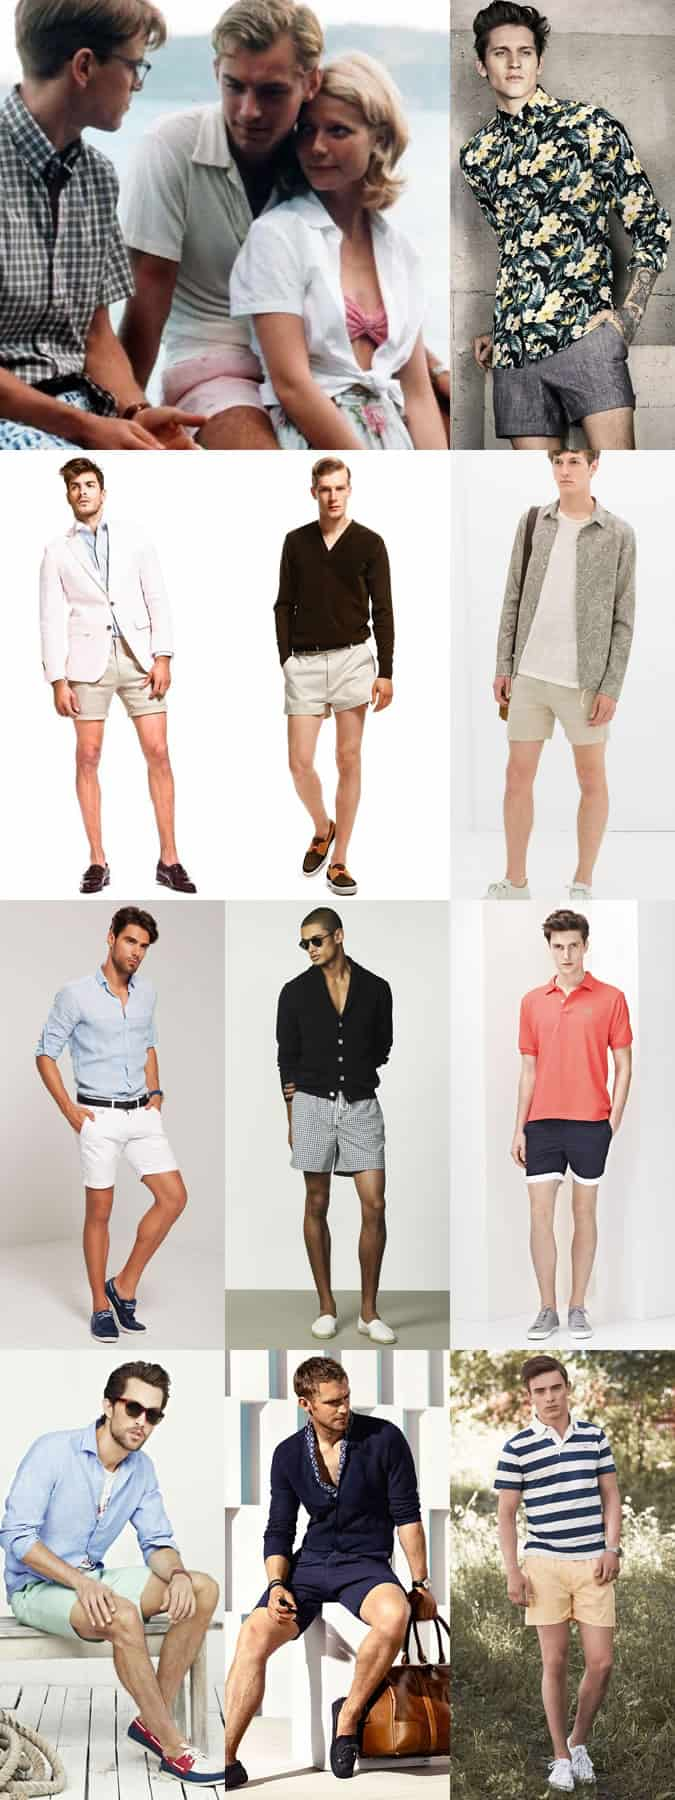 Men's Fifties-Inspired Short Shorts Outfit Inspiration Lookbook